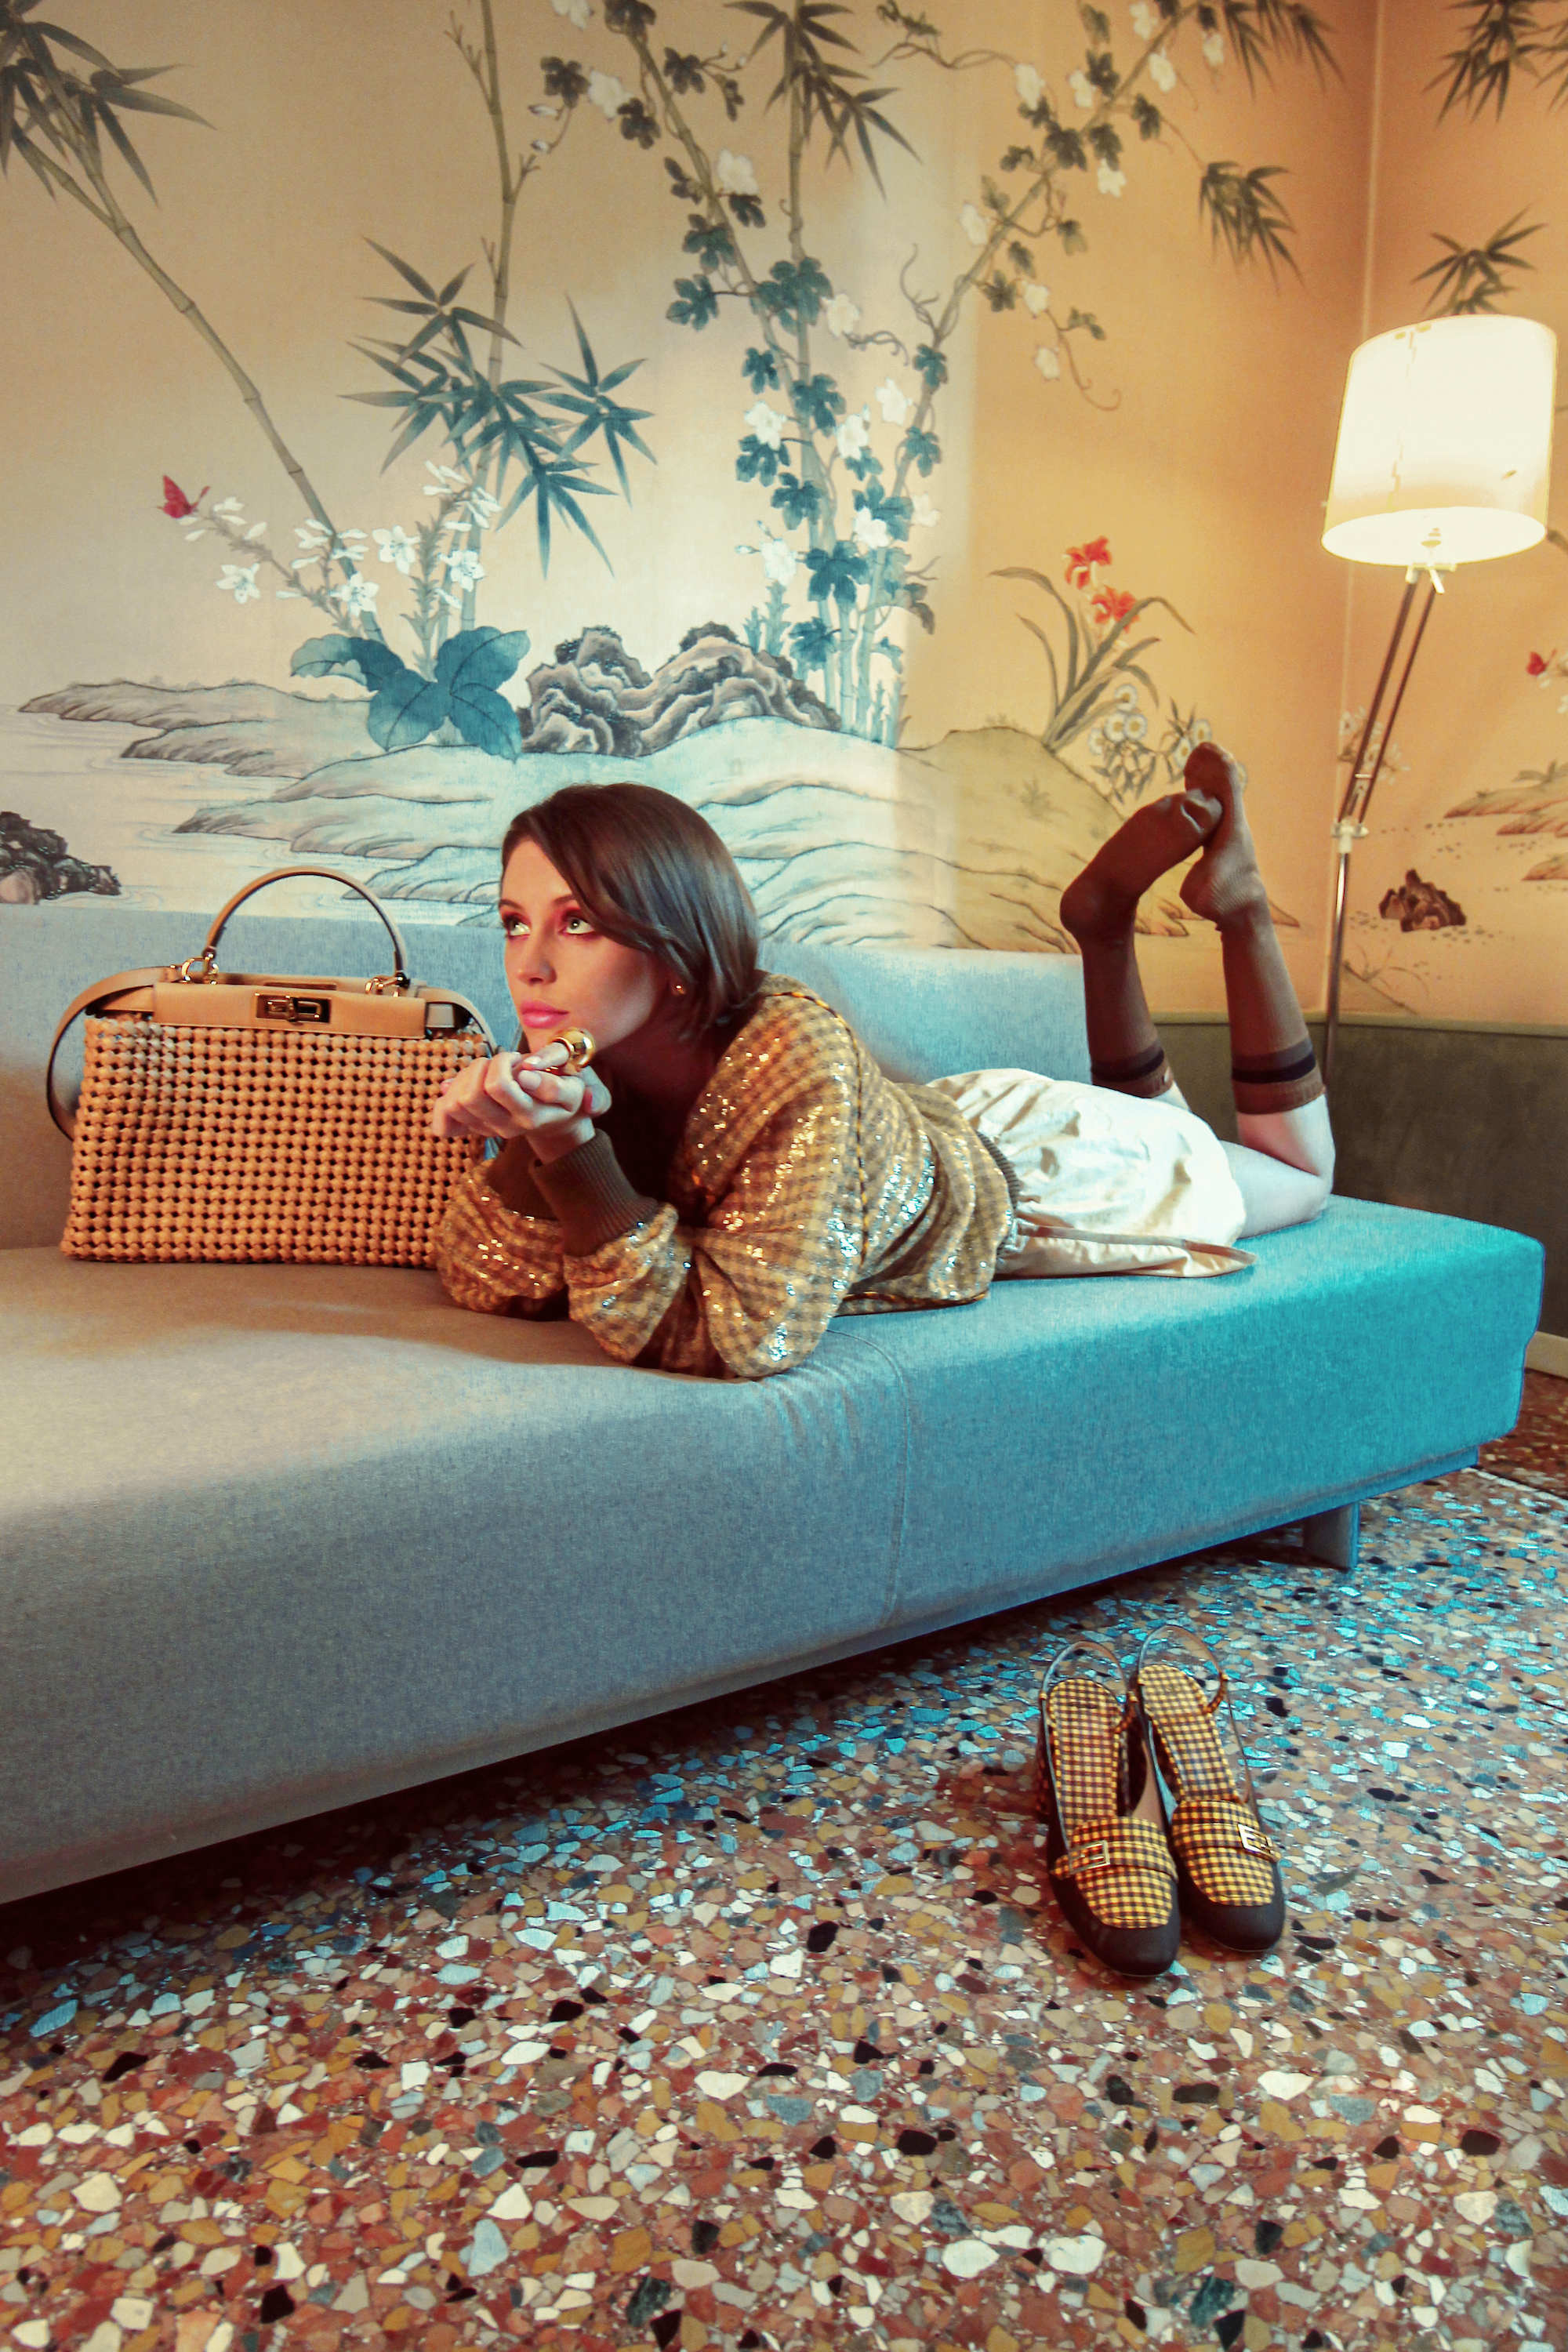 Iris law laying on a blue sofa